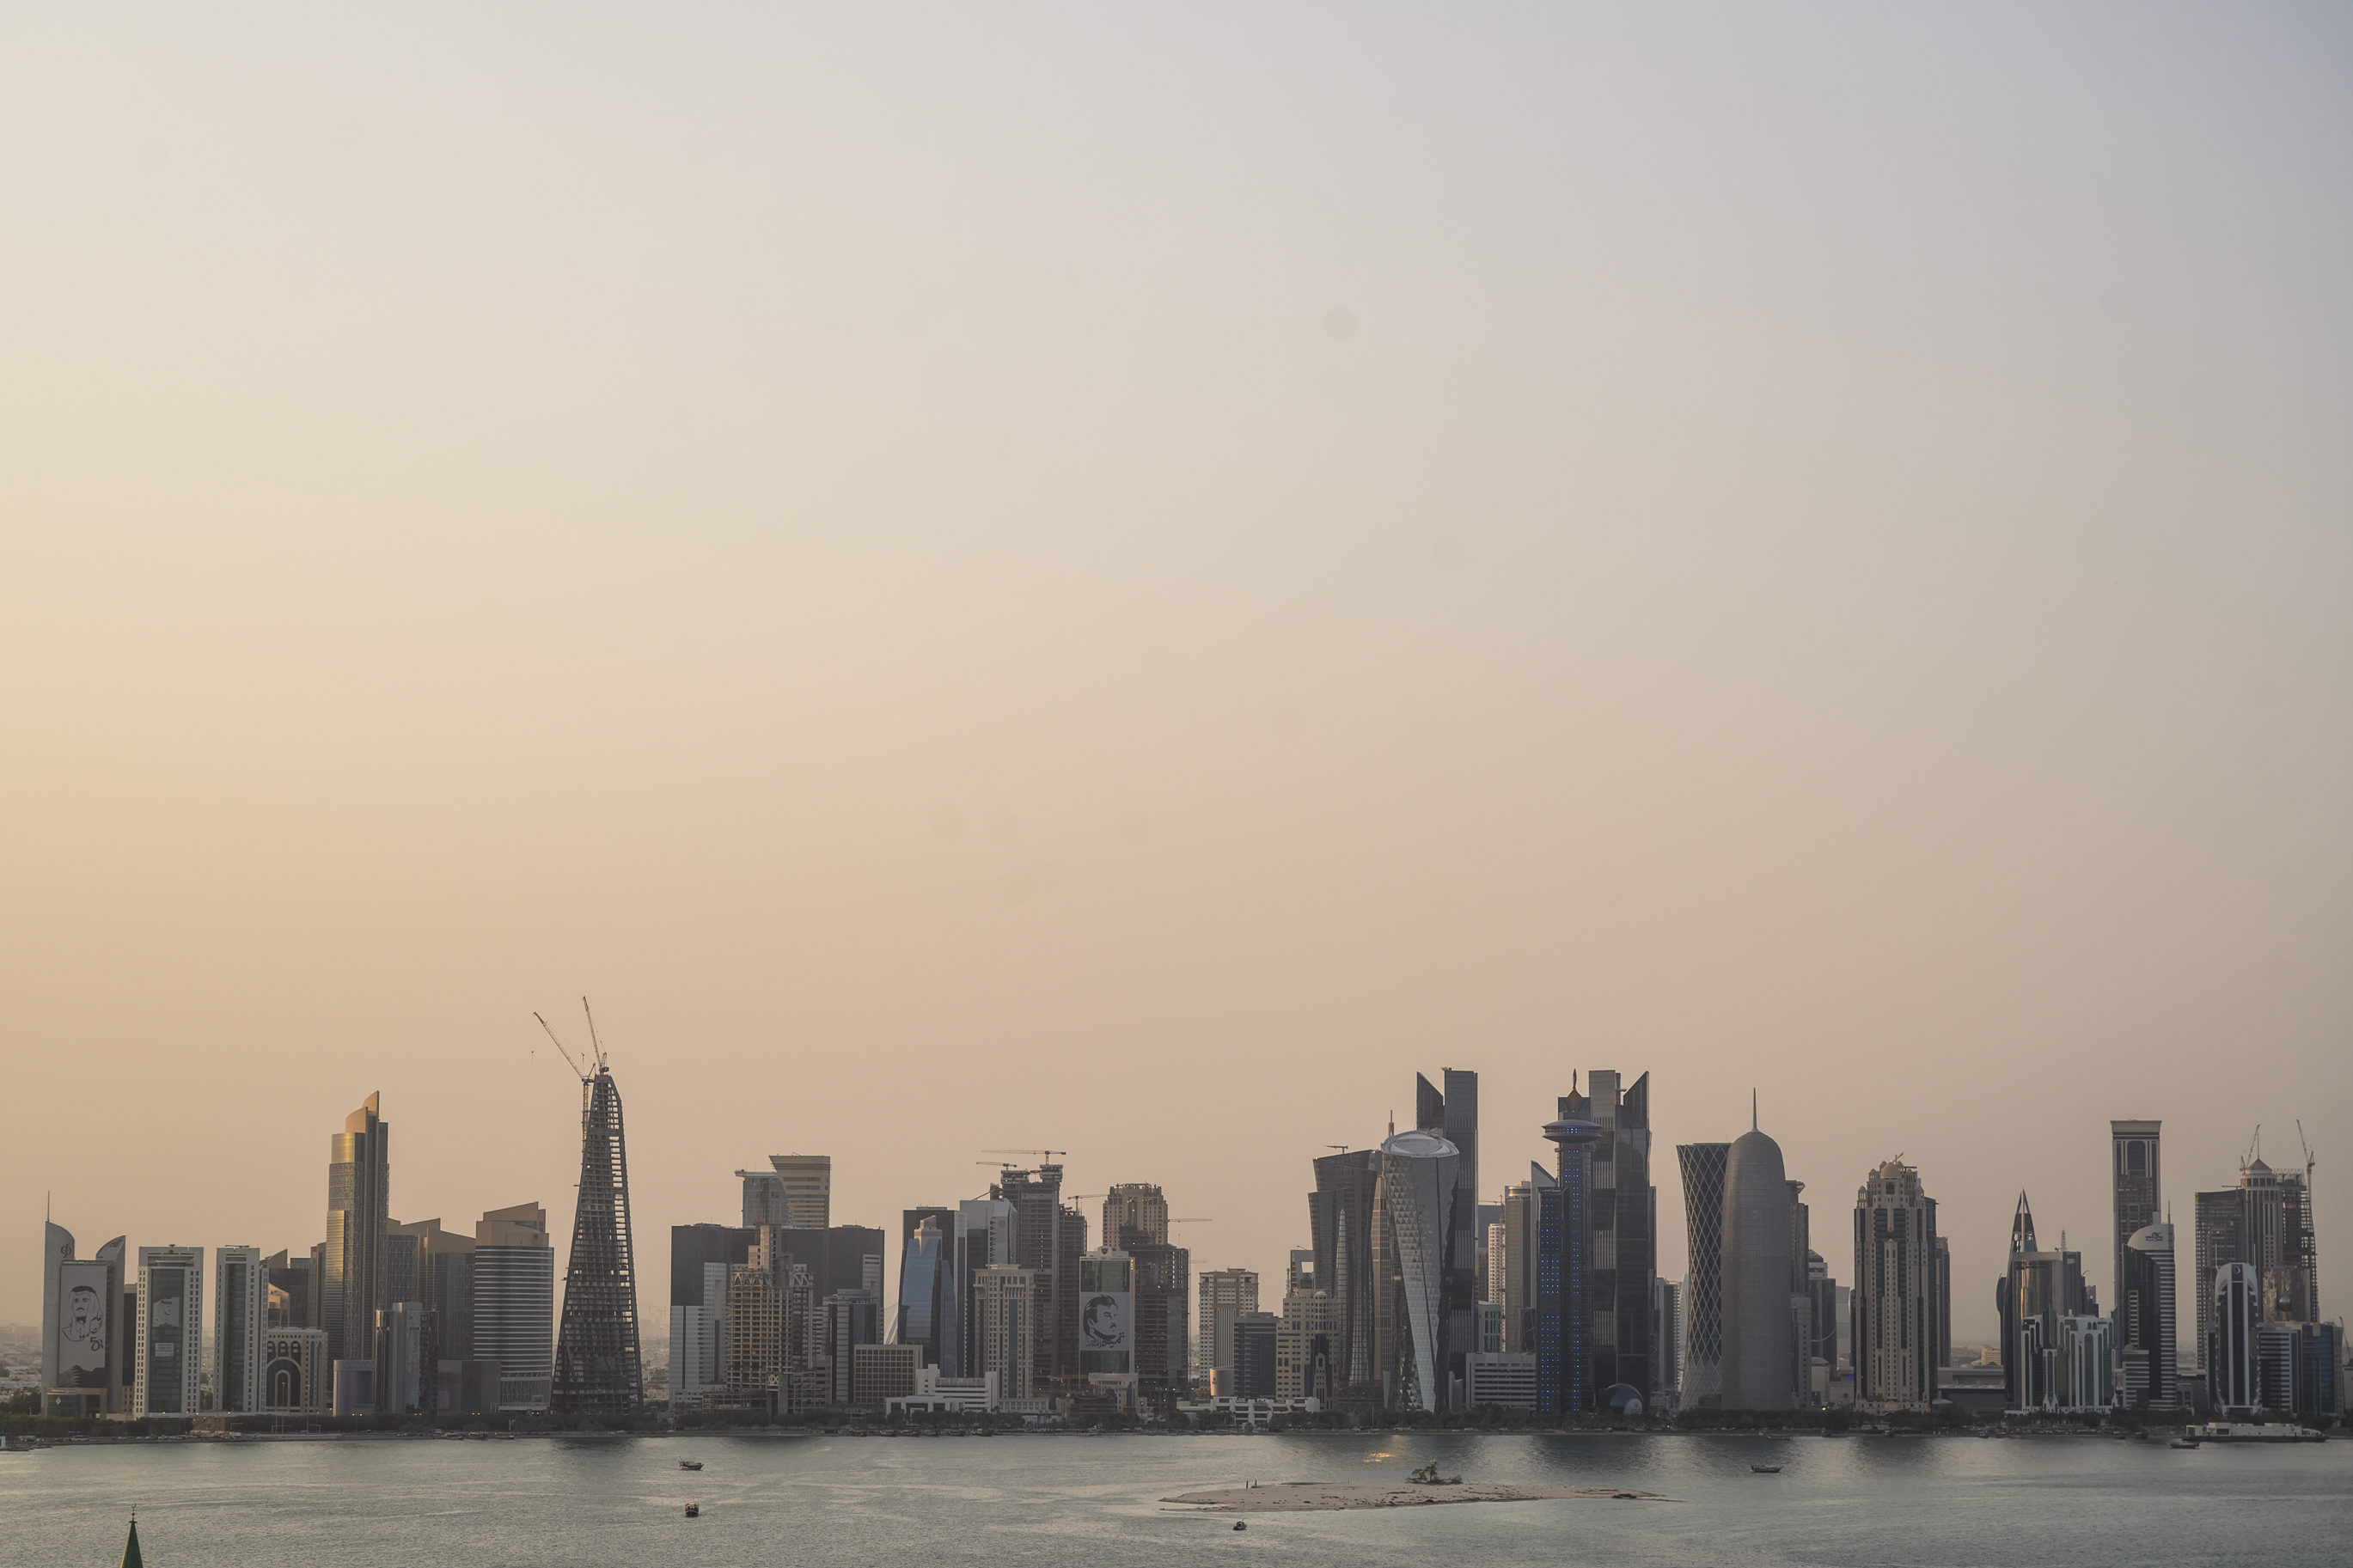 The skyline in Doha, Qatar, in July 2019. MUST CREDIT: Washington Post photo by Salwan Georges